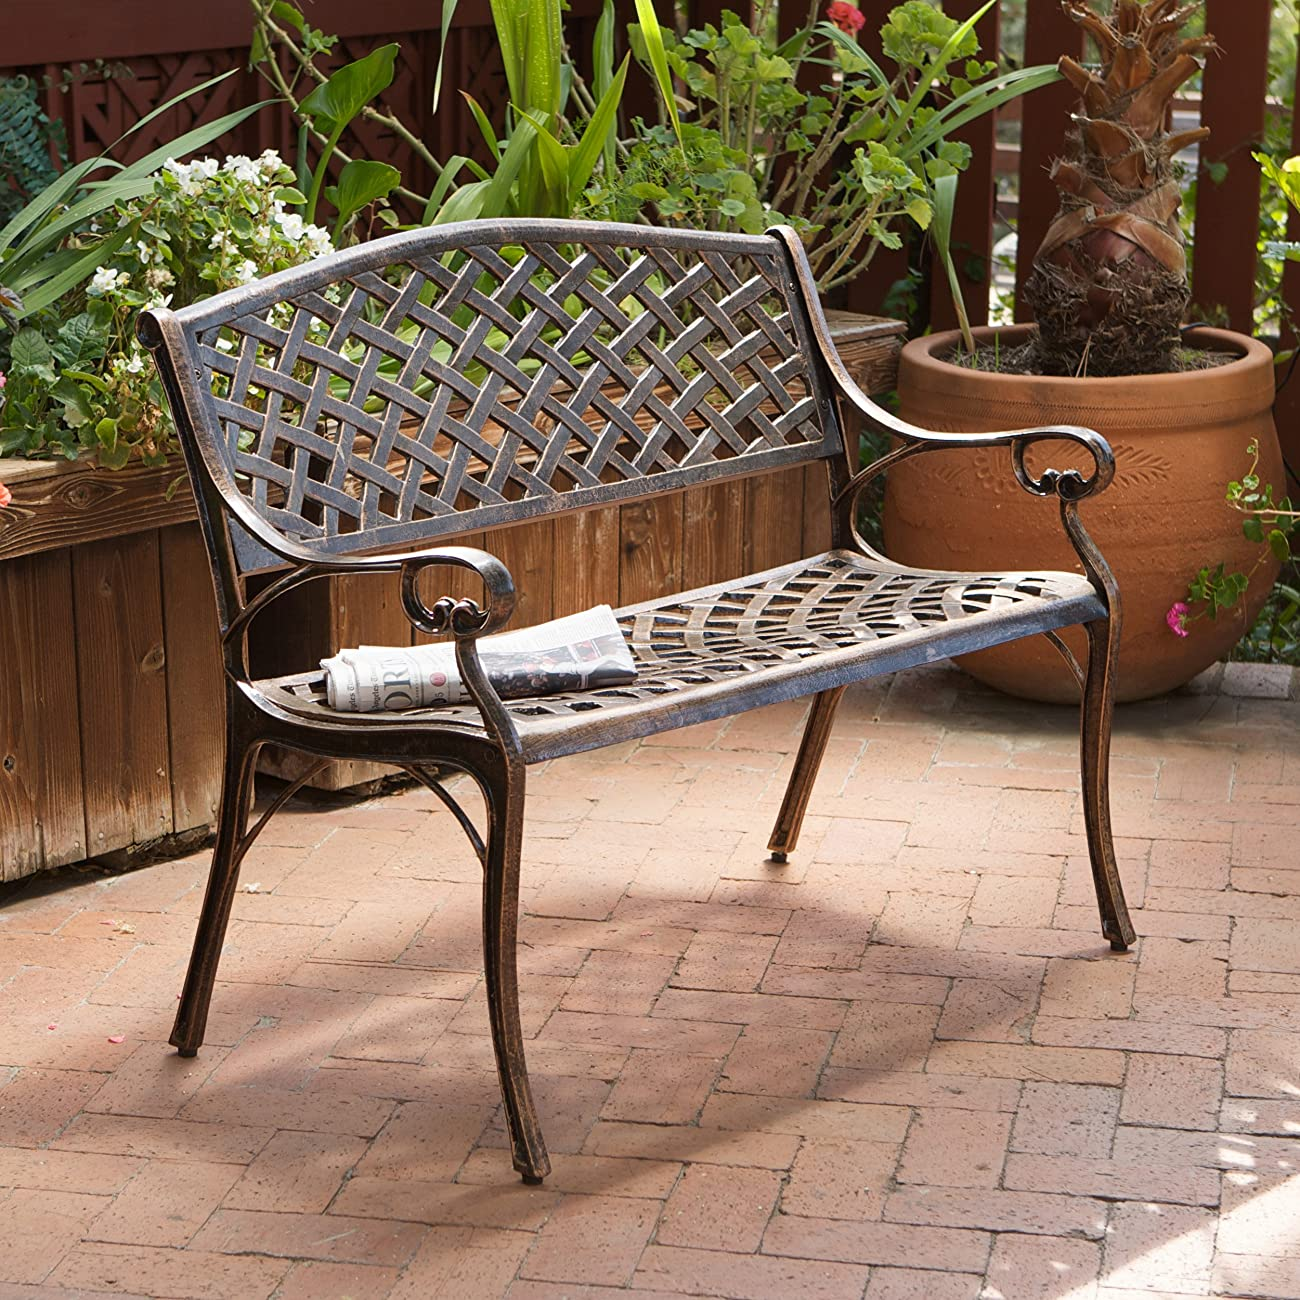 Best Selling Cozumel Cast Aluminum Bench, Antique Copper Finish 3